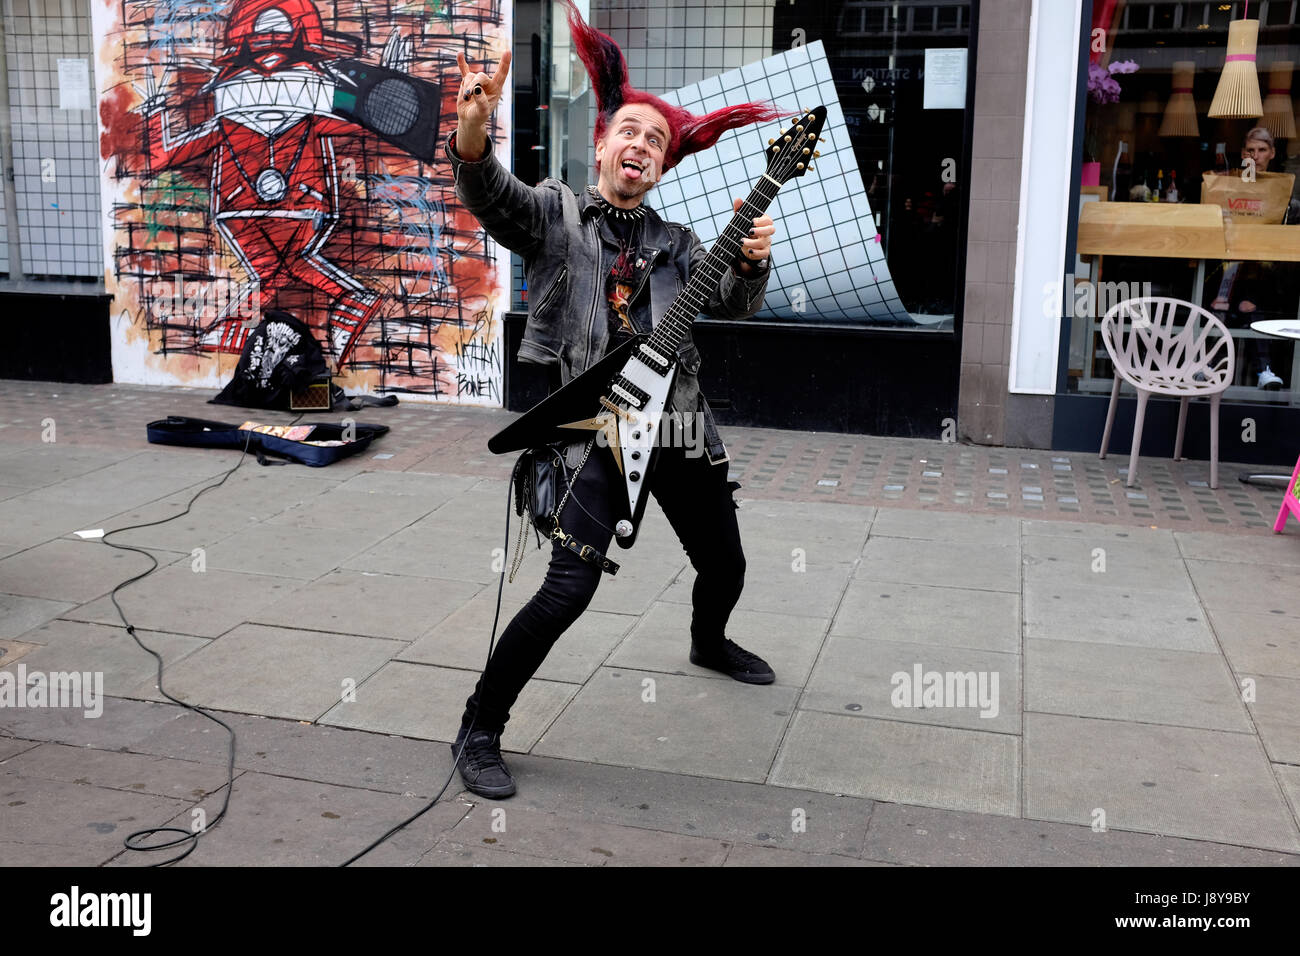 London Street Musician or Busker, playing guitar on the streets of Camden Town, London. - Stock Image